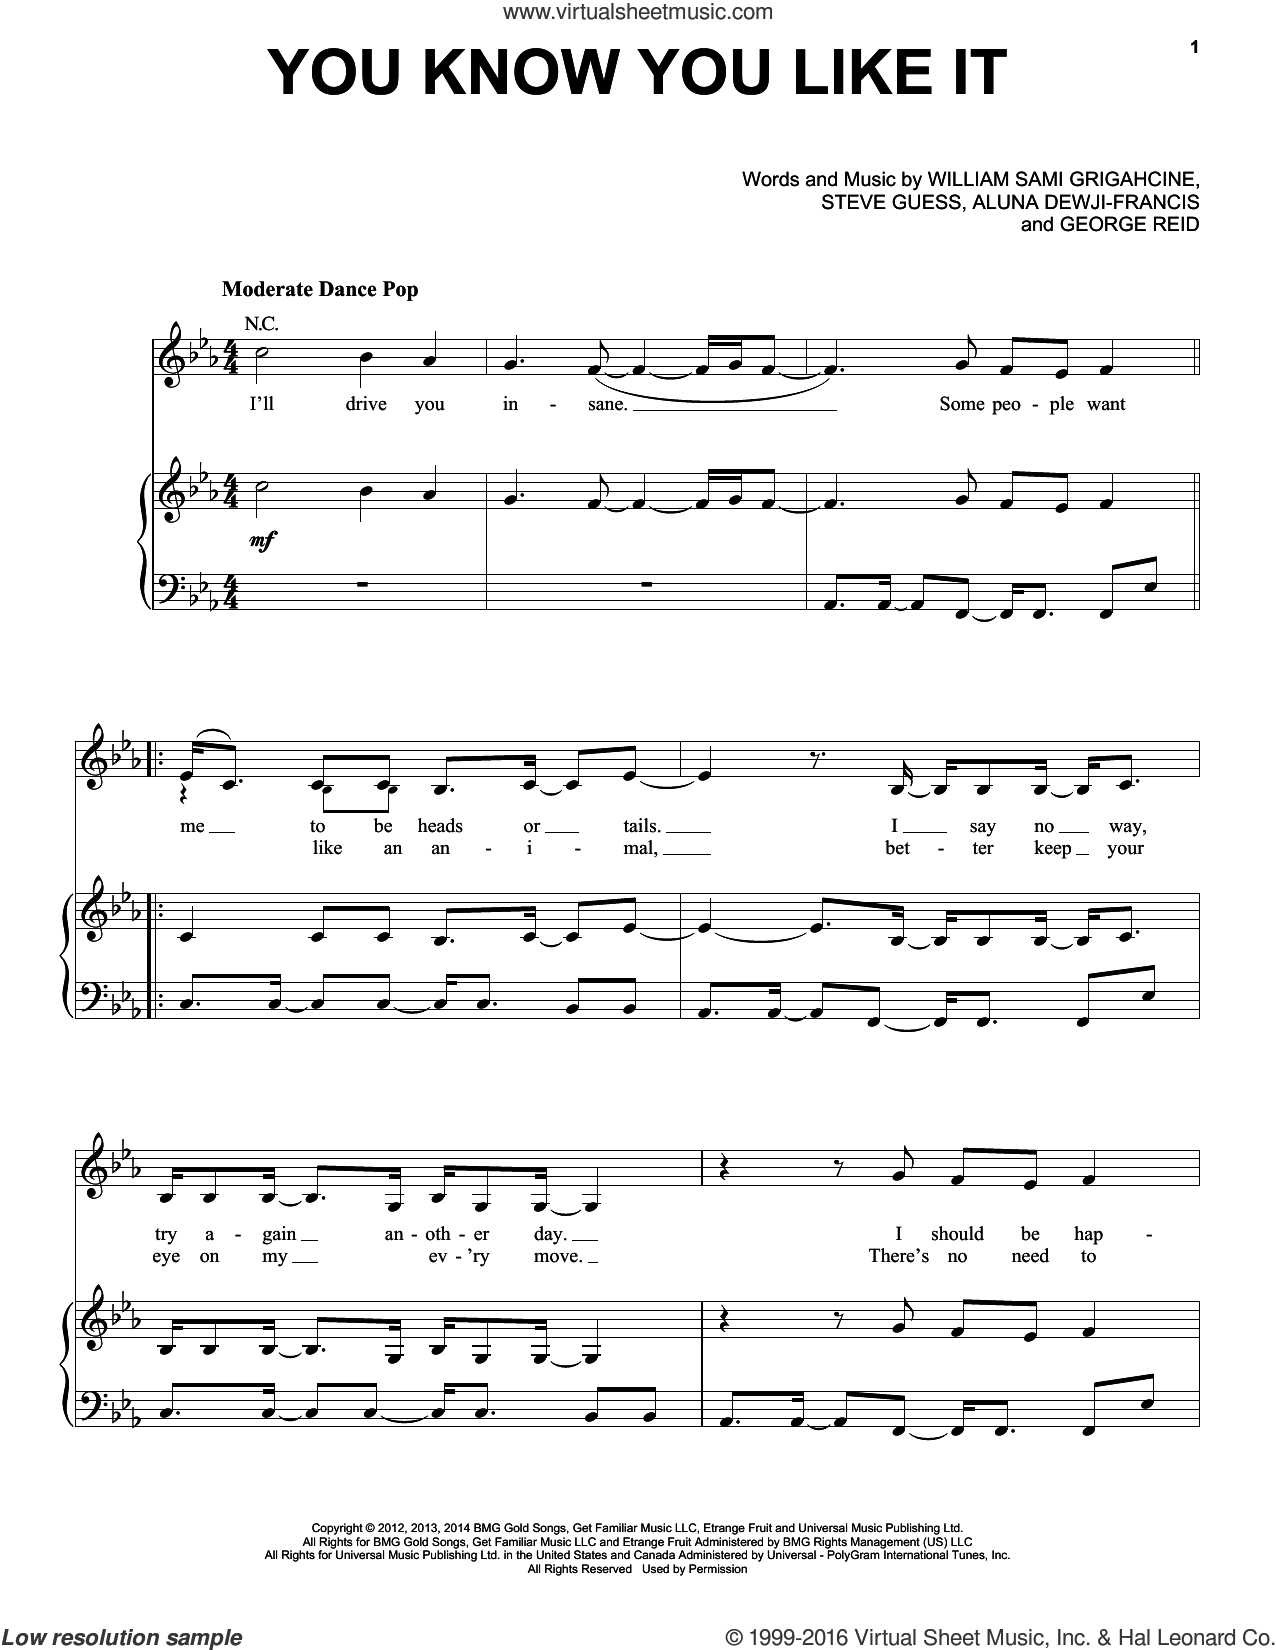 You Know You Like It sheet music for voice, piano or guitar by DJ Snake & AlunaGeorge, Aluna Dewji-Francis, George Reid, Martin Bresso, Steve Guess and William Sami Grigahcine, intermediate skill level